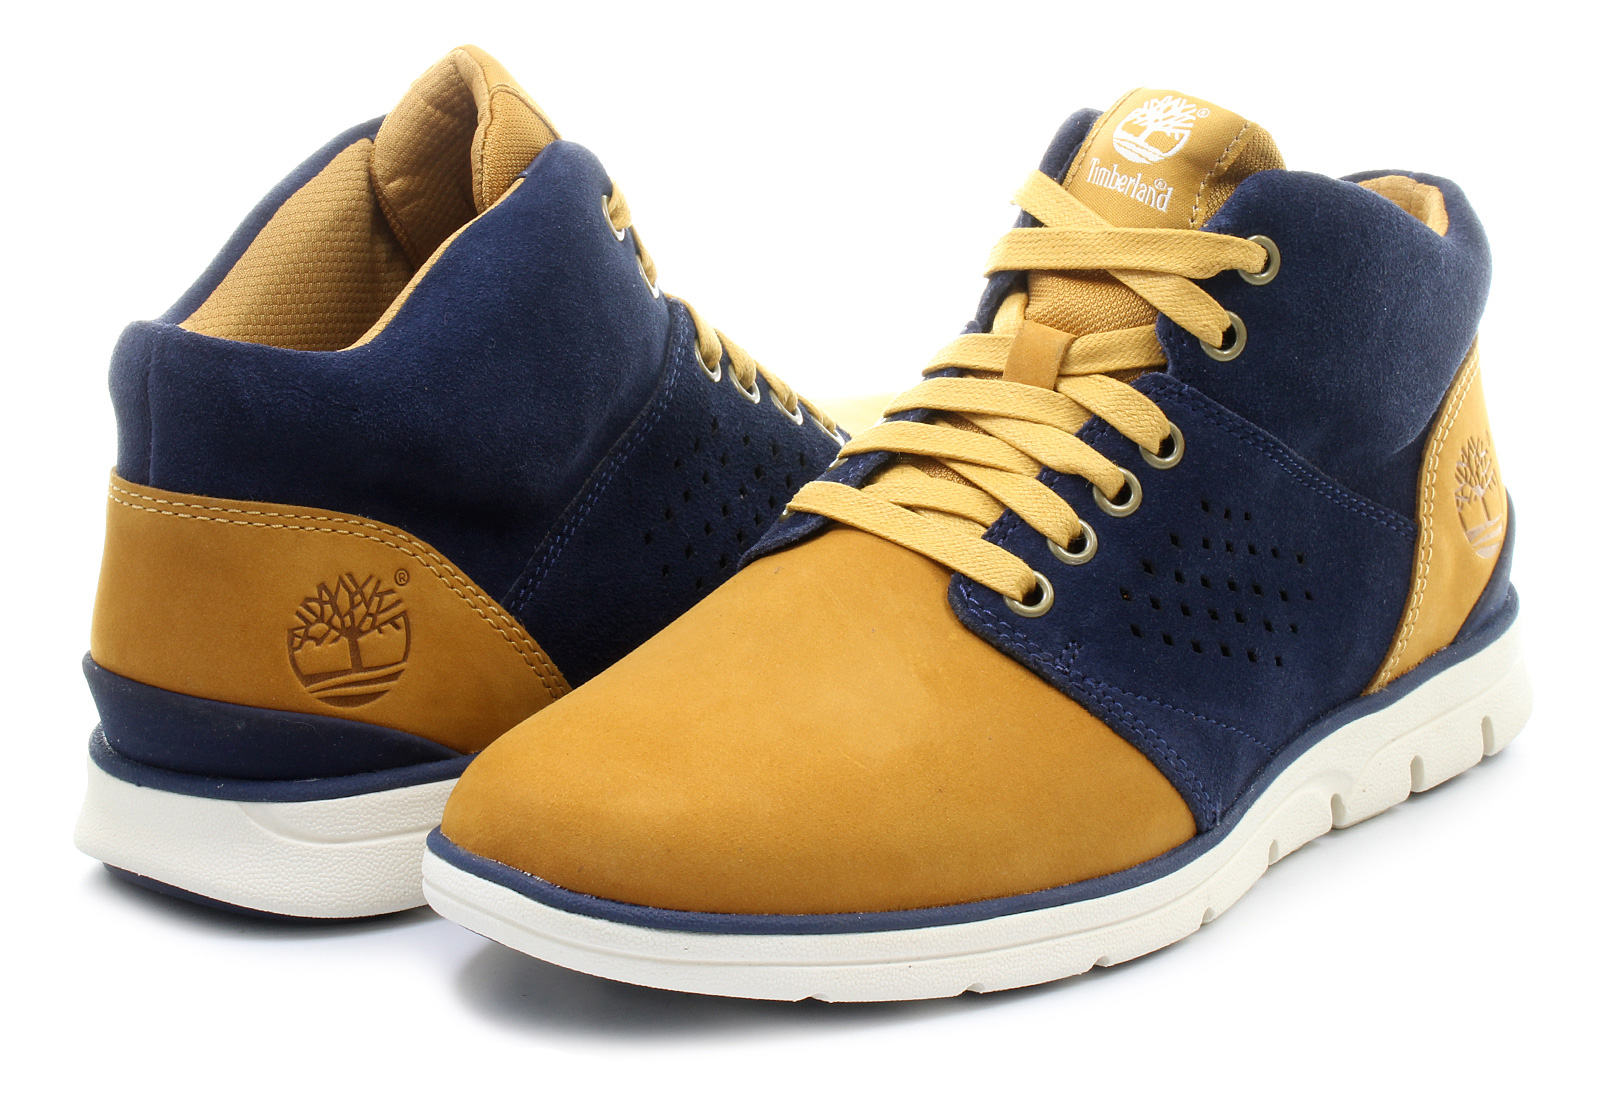 e115b8ba9de Timberland Boots - Bradstreet Half Cab - a121l-whe - Online shop for  sneakers, shoes and boots